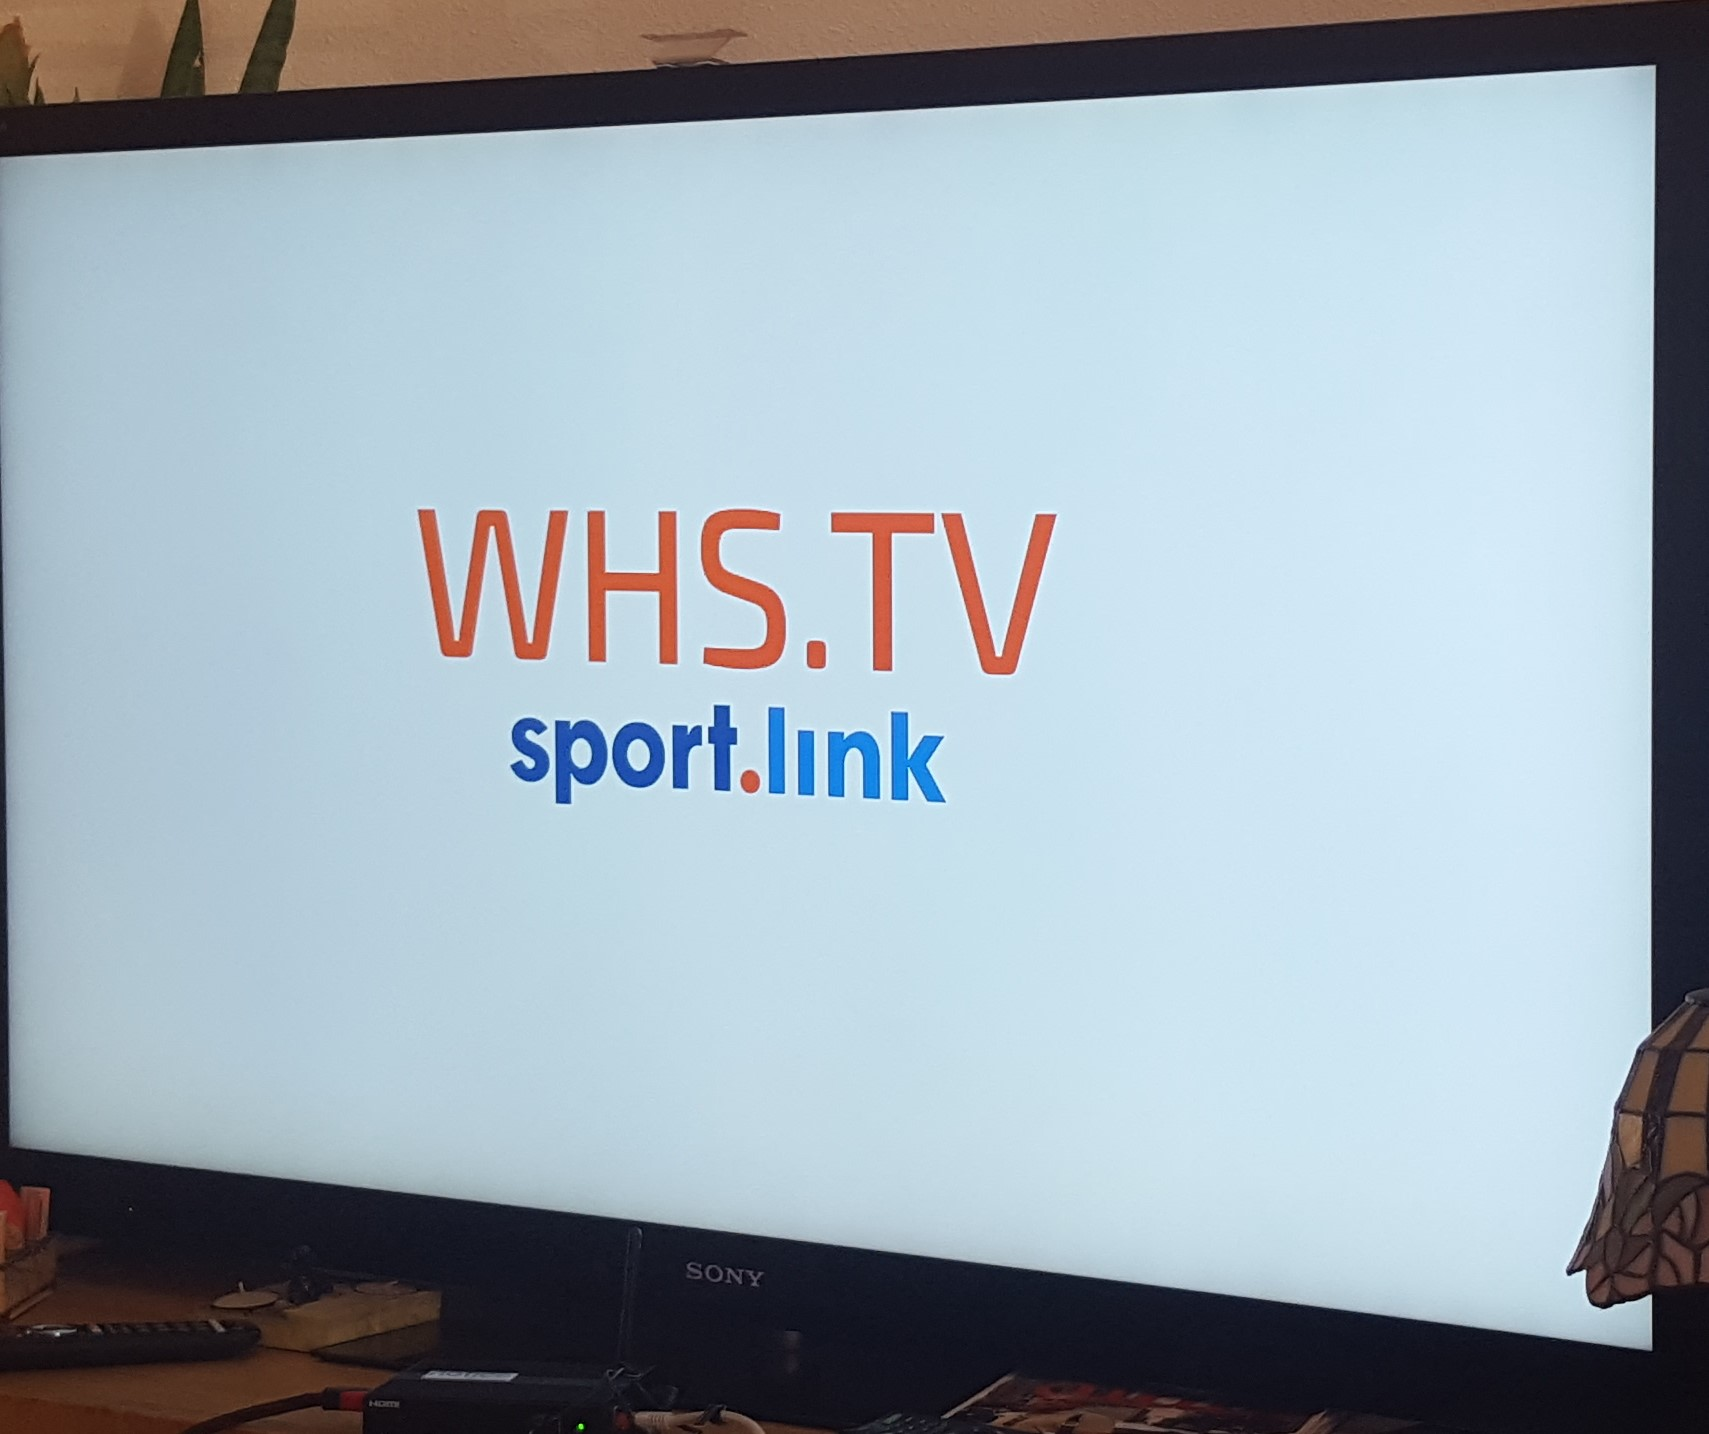 WHS TV